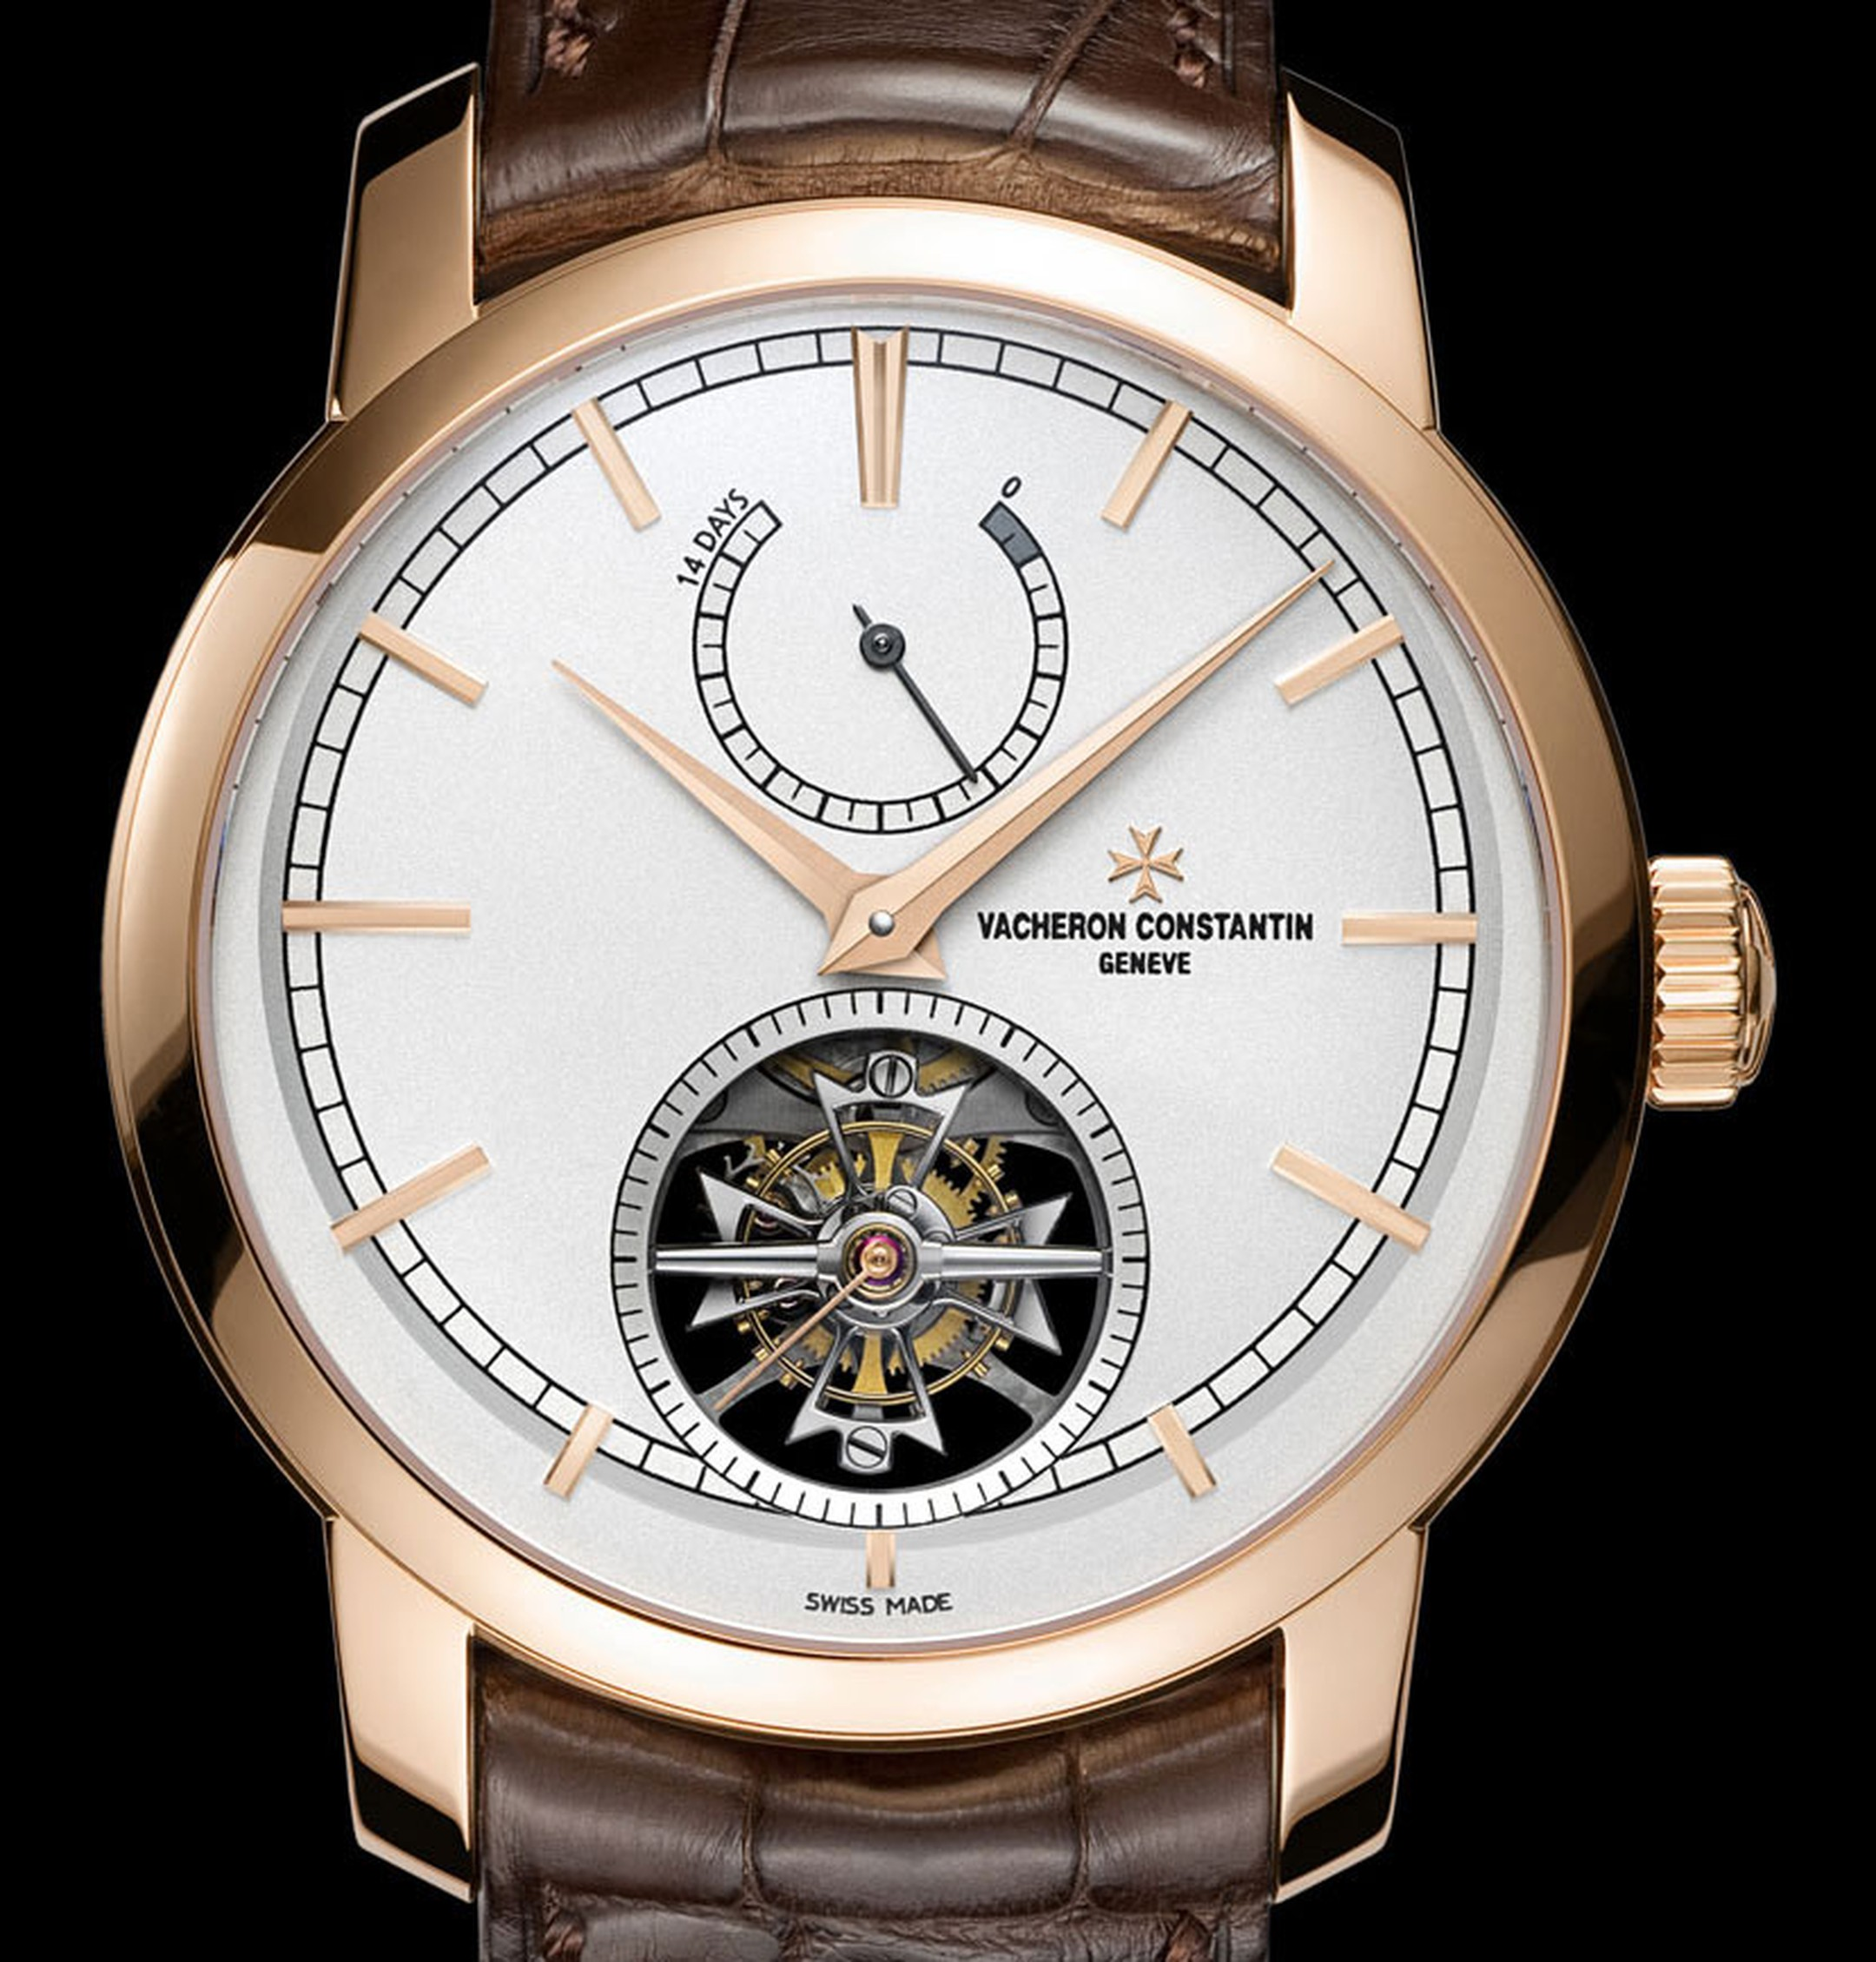 Vacheron-Constantin-Patrimony-Traditionnelle-14-day-Tourbillon-pink-gold,-transparent-back-fitted-with-a-sapphire-crystal-and-brown-alligator-leather-strap